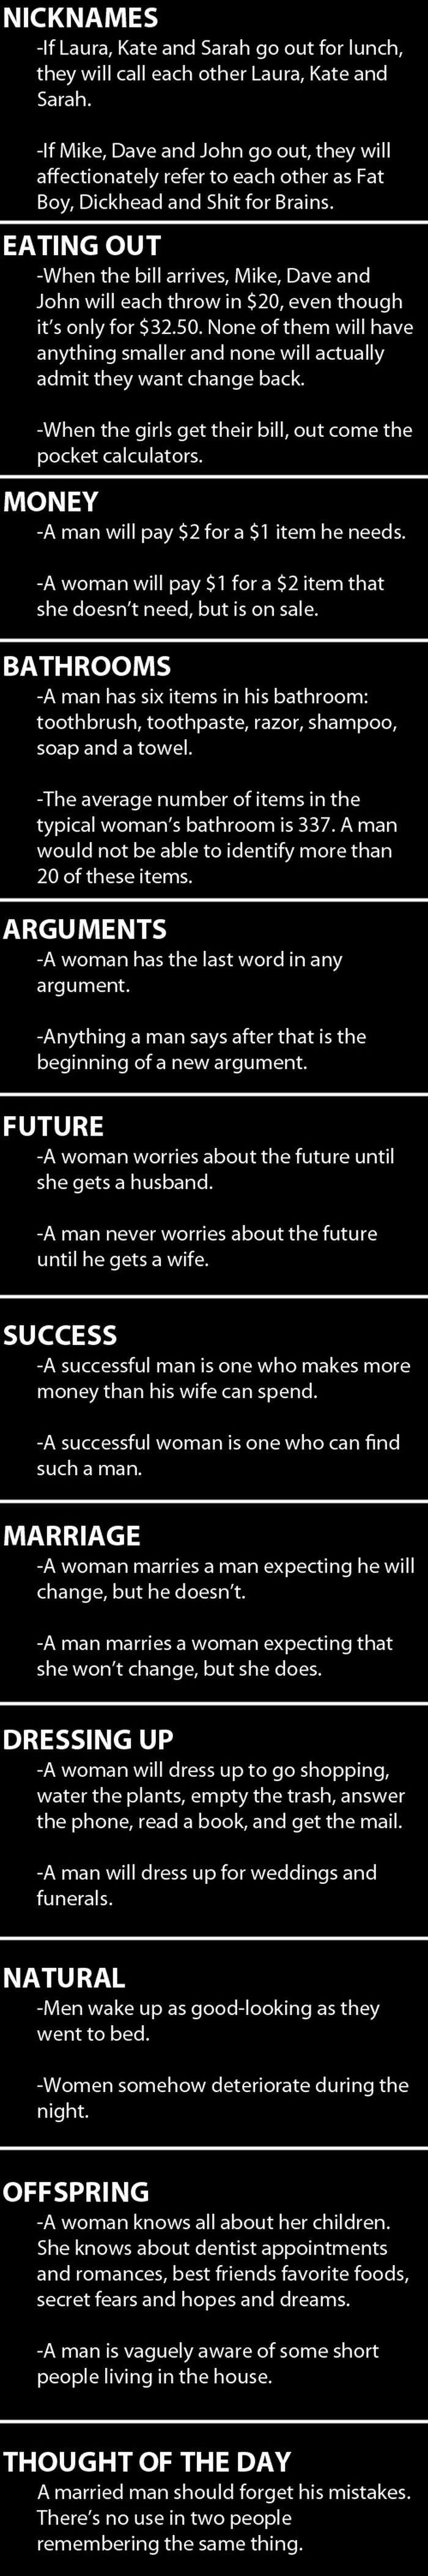 Men vs. Women (2 pics)